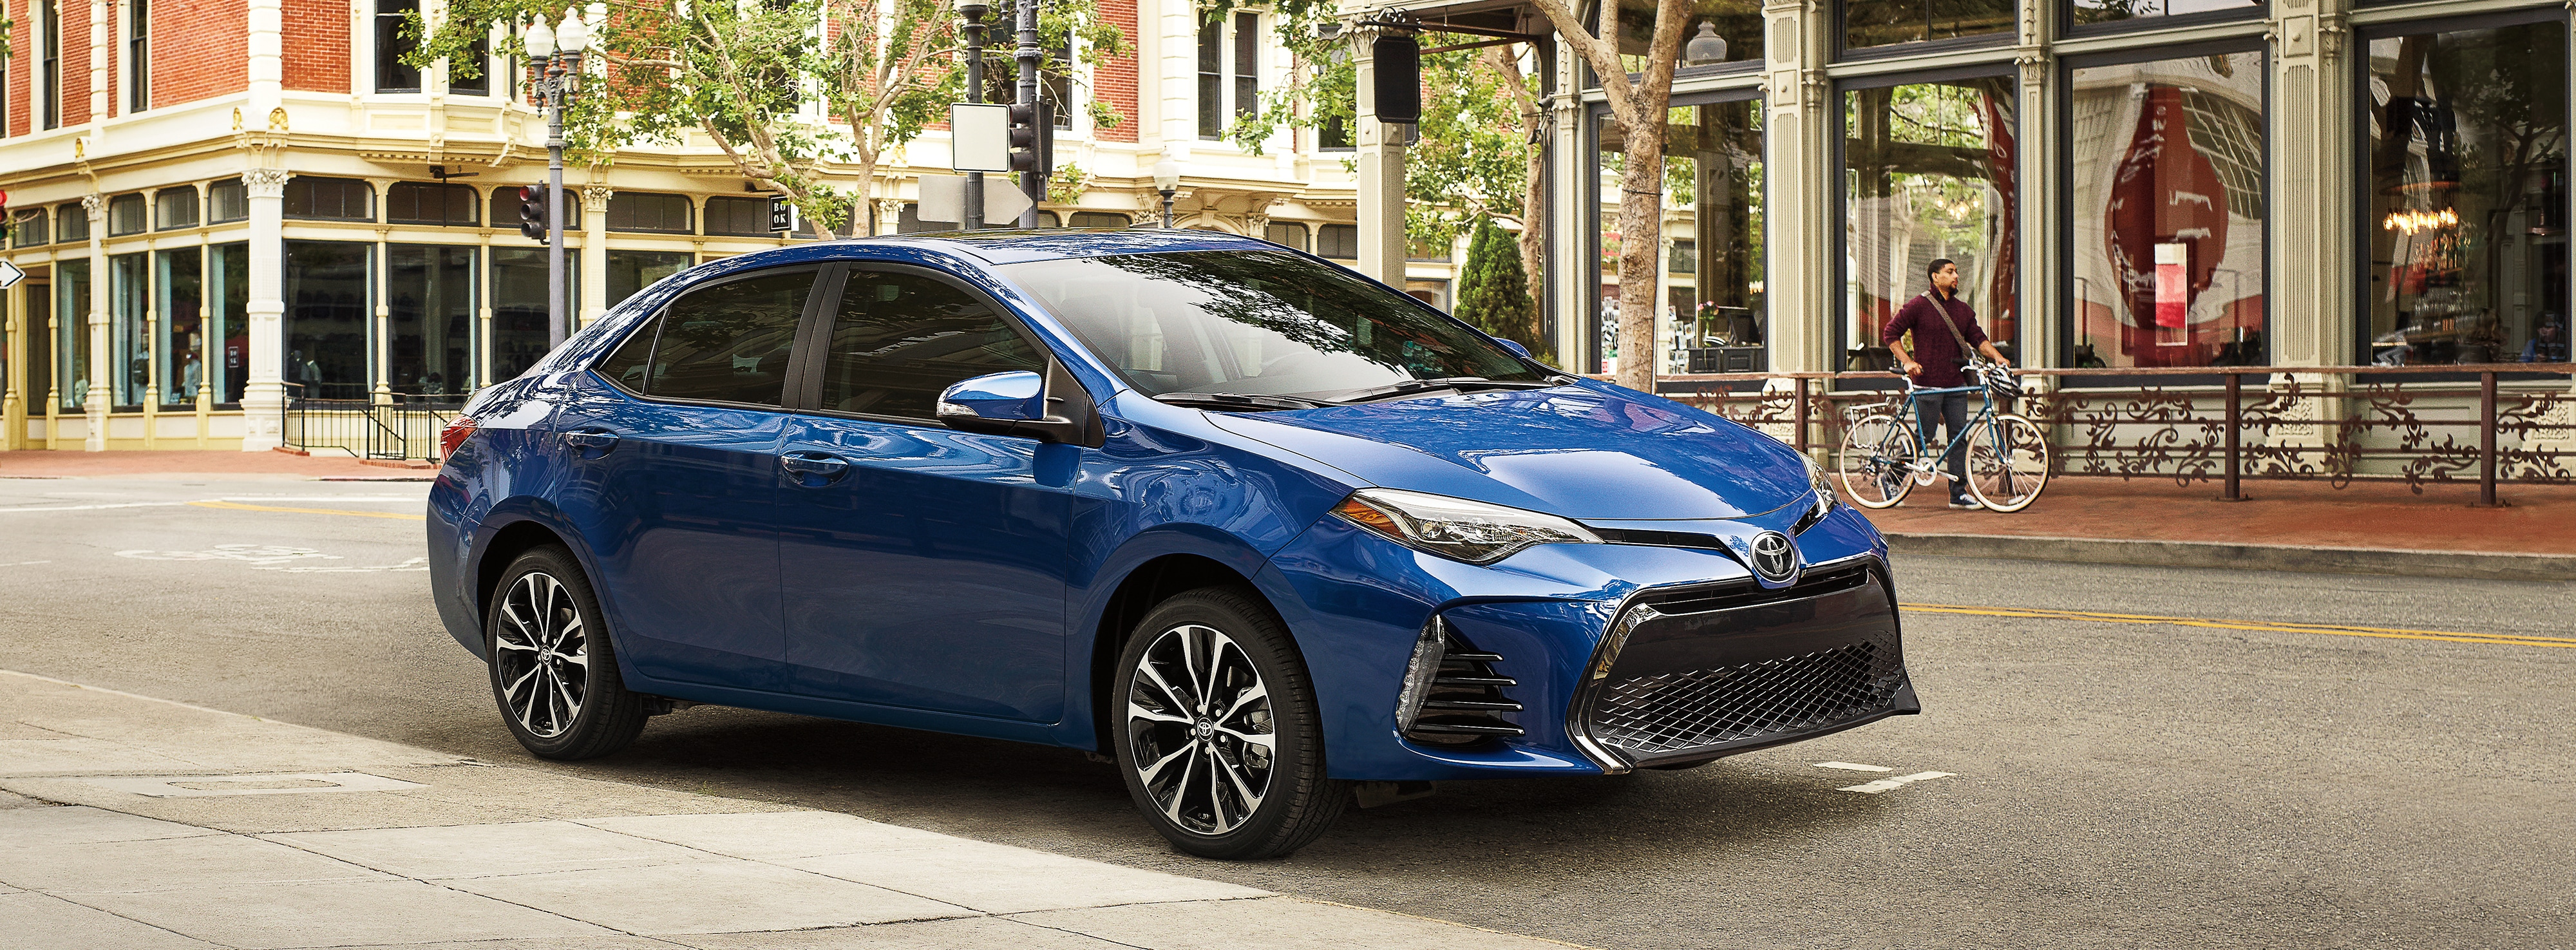 2019 Toyota Corolla Dallas | Sport City Toyota near Plano TX